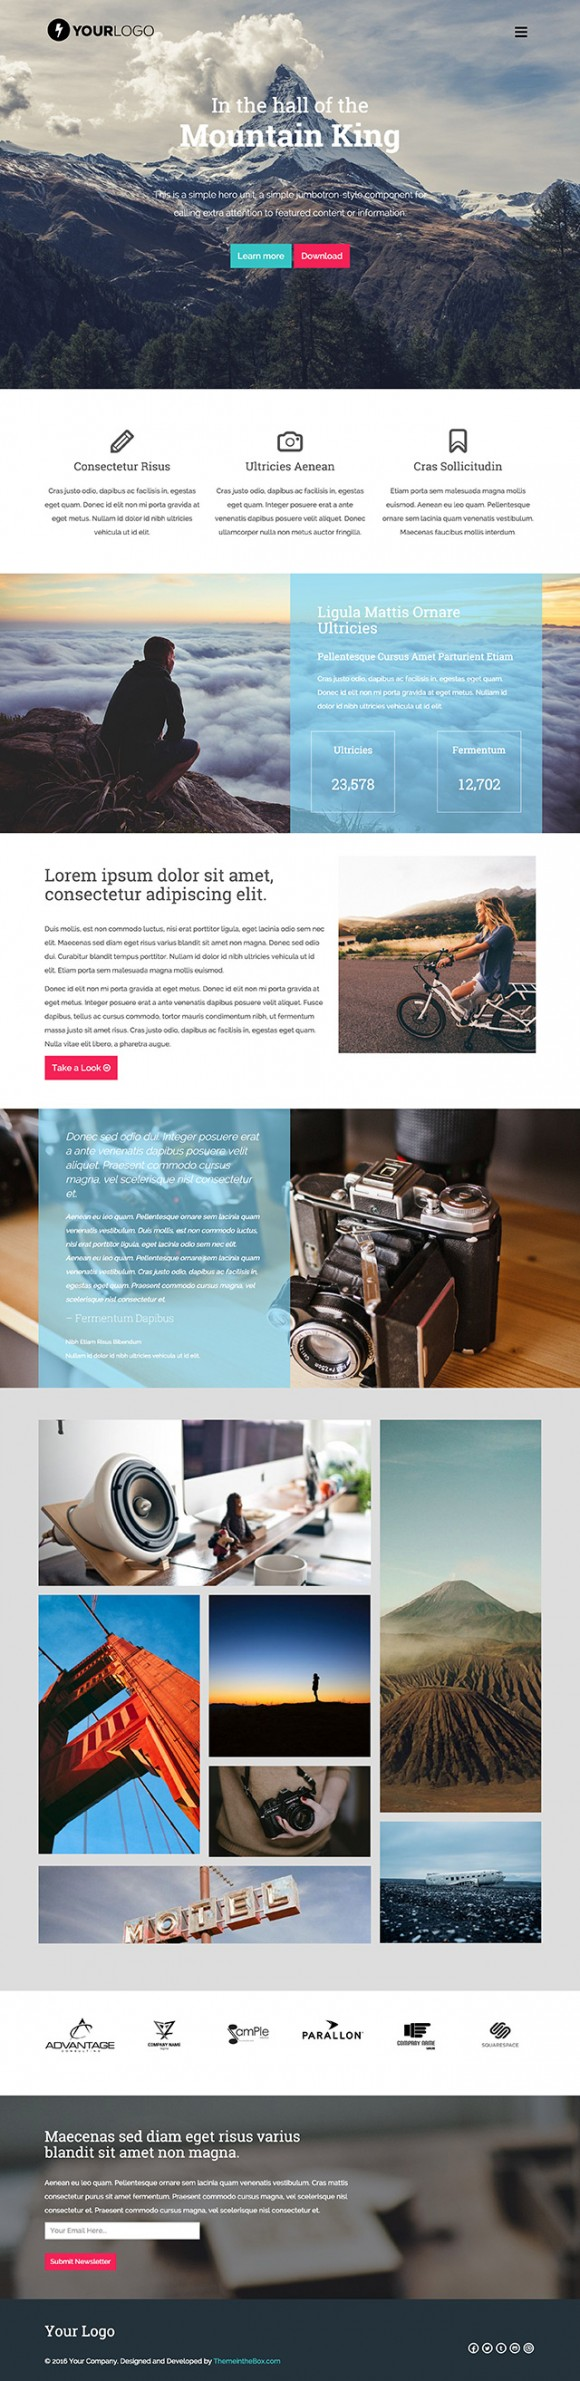 Mountain King: HTML Bootstrap template - Full image